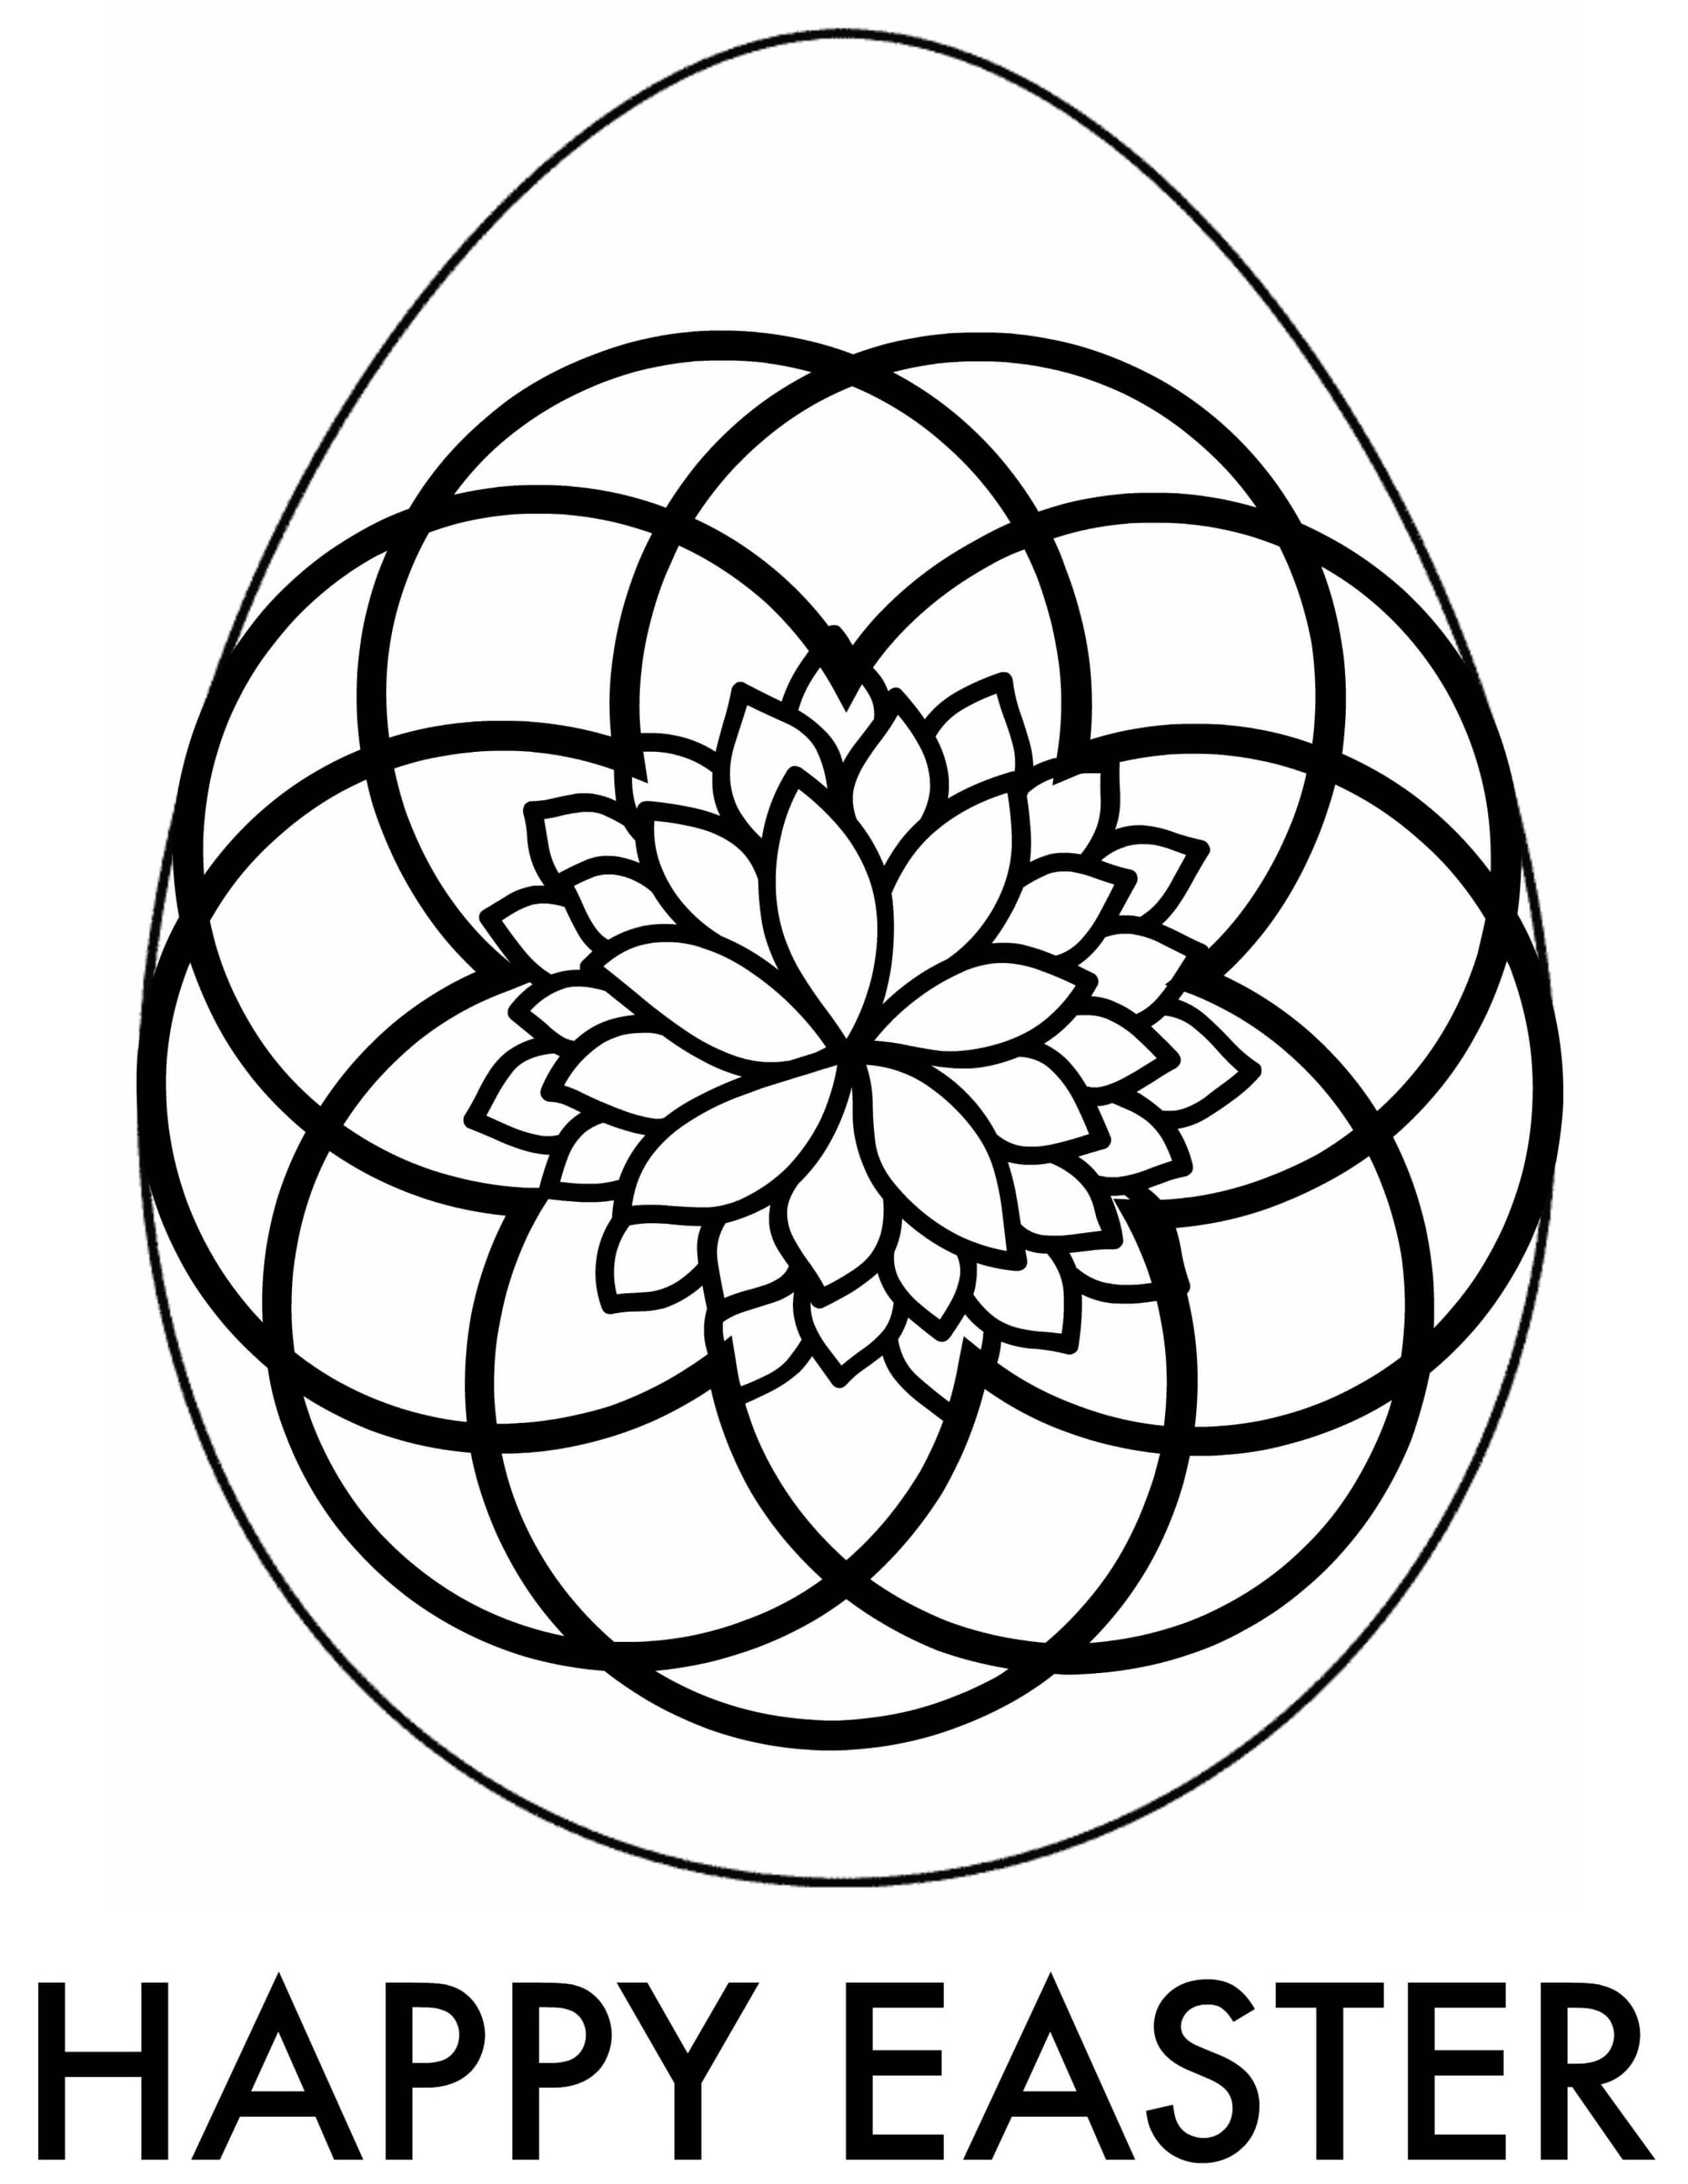 easter egg coloring pages easter egg hearts pattern coloring page free coloring pages easter egg coloring